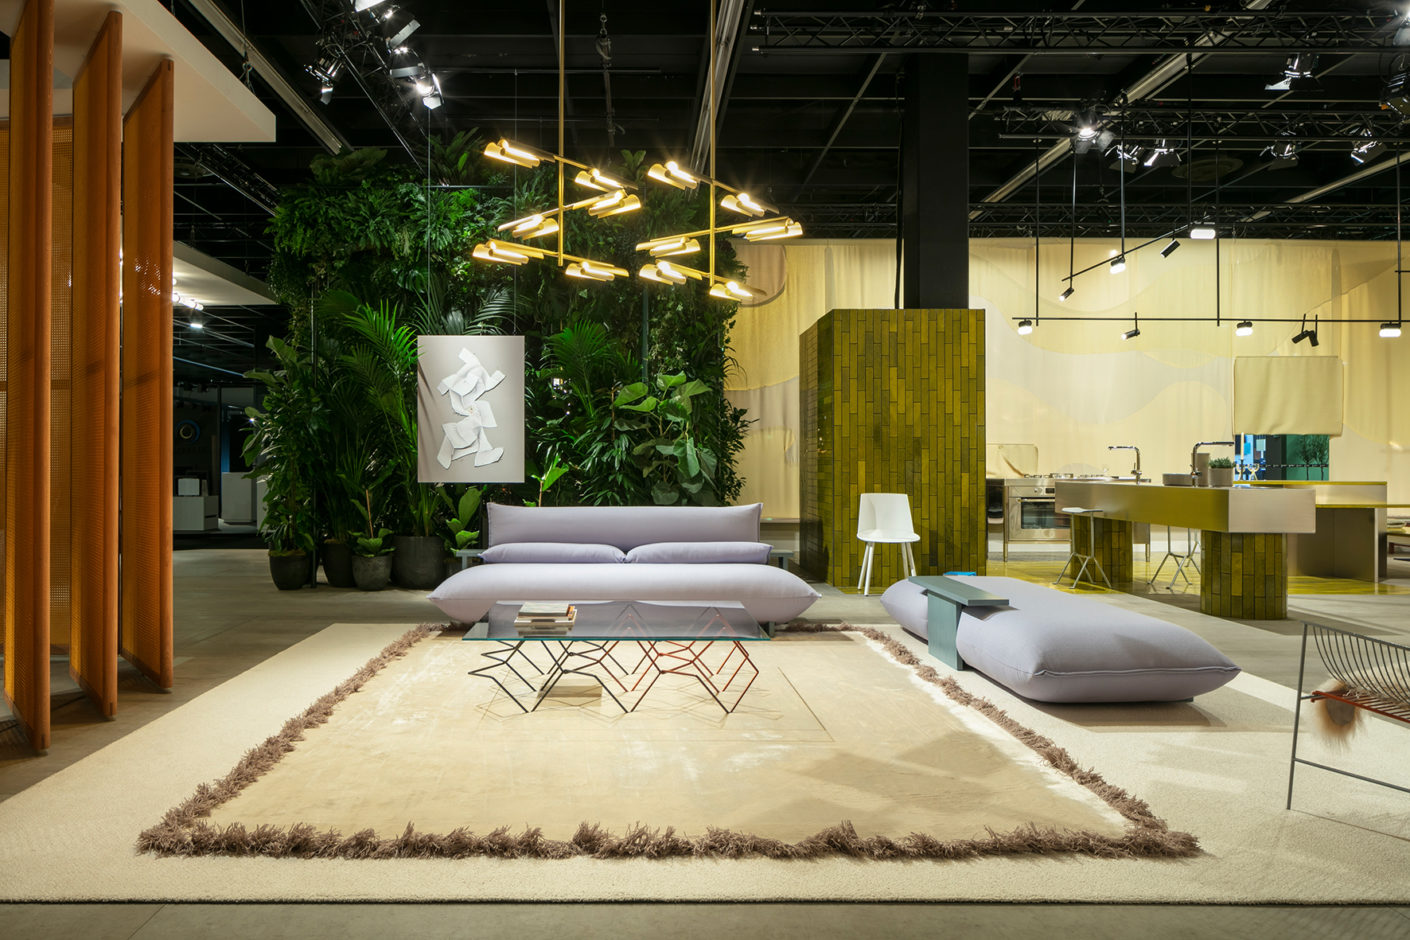 imm cologne 2019: Turnarounds and new